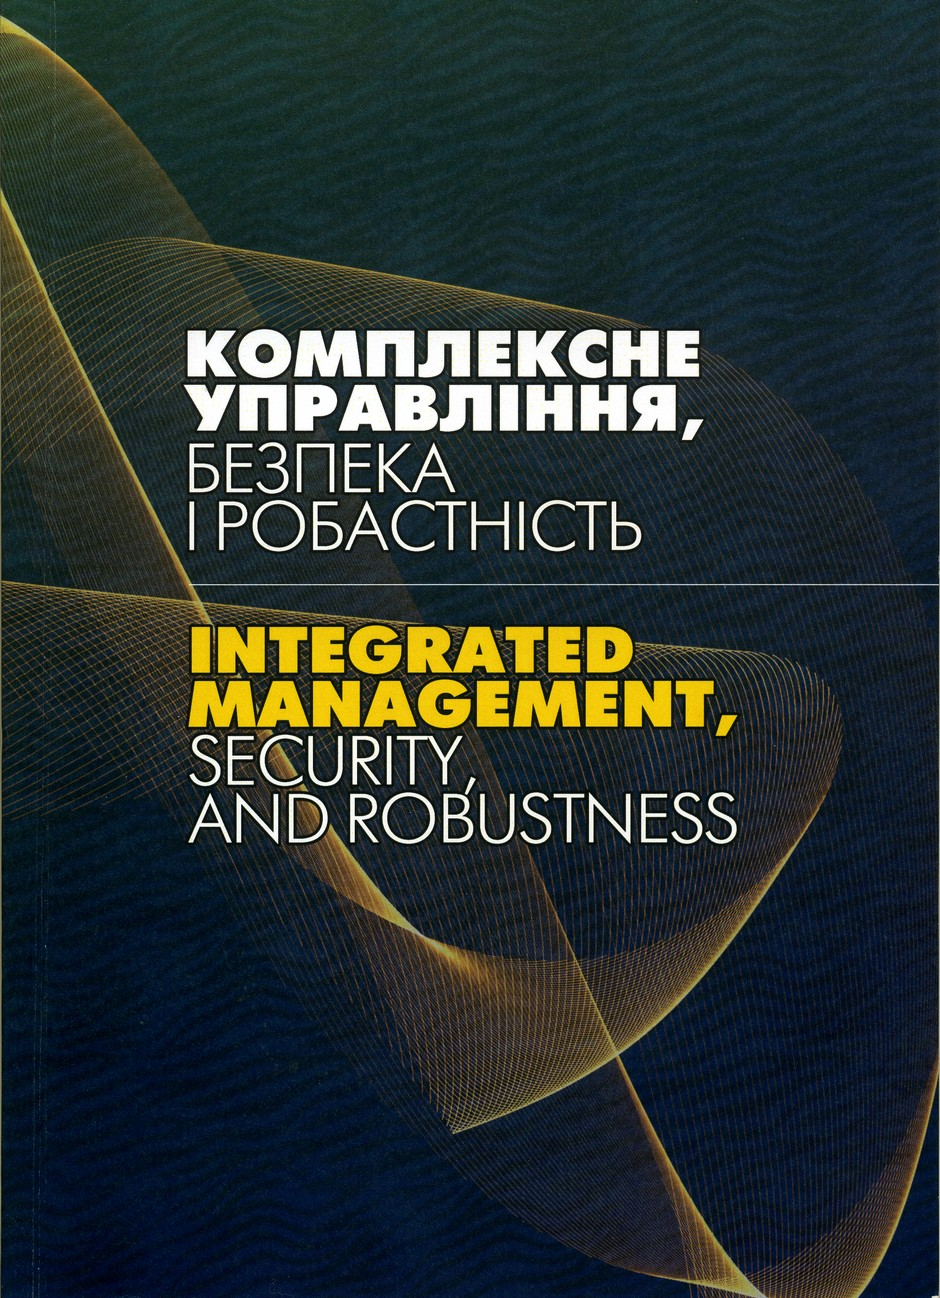 integrated management security and robustness